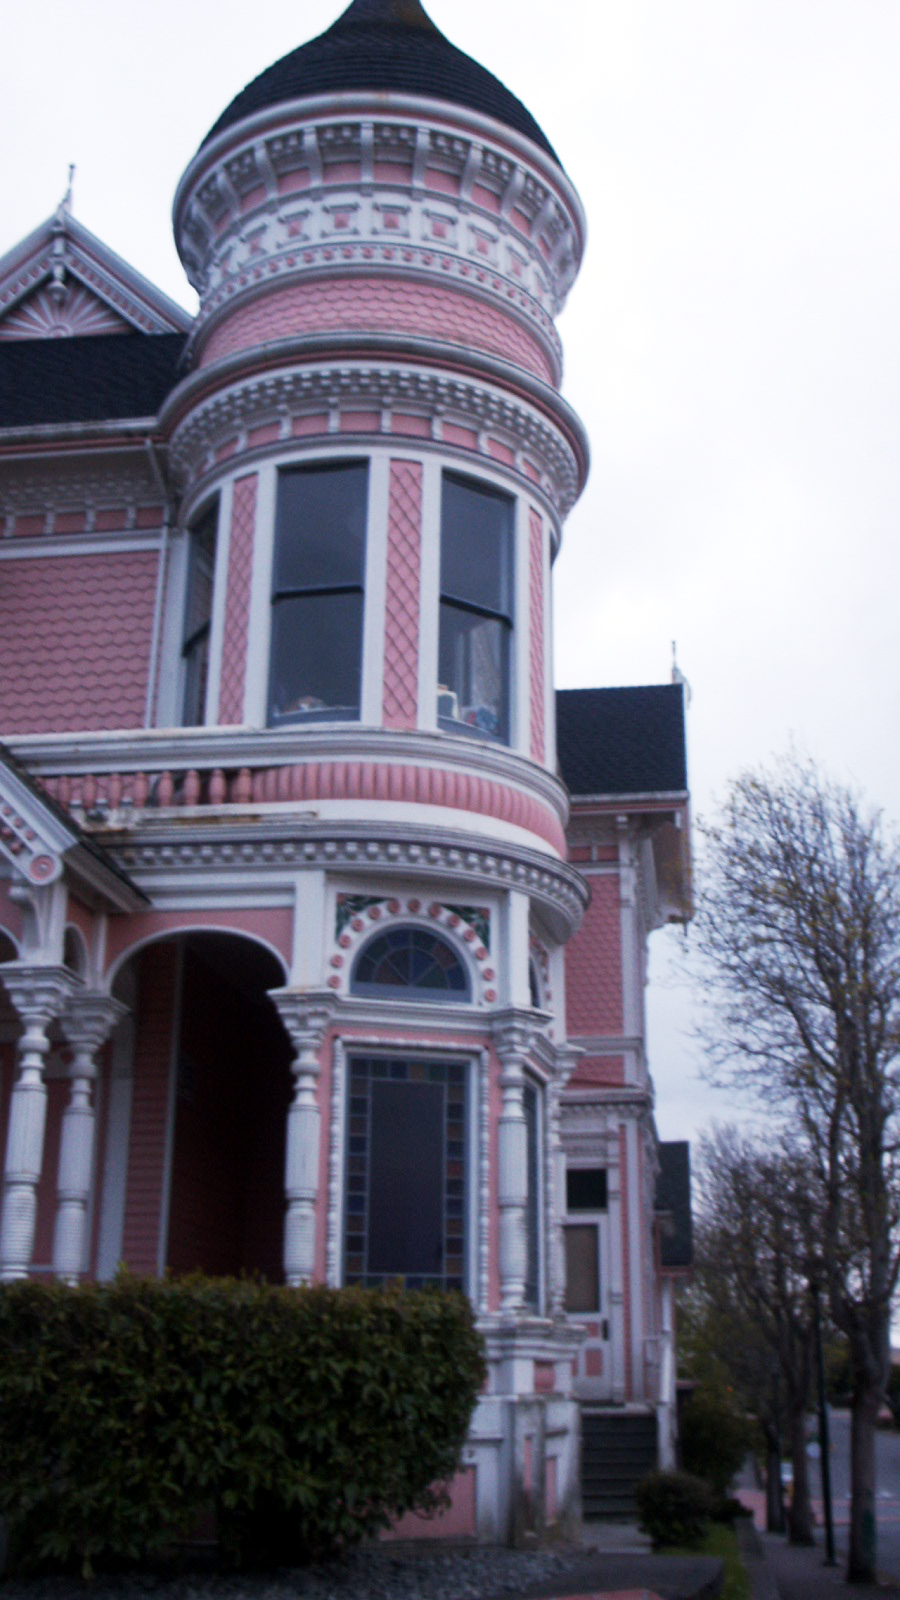 FileEureka CA Pink Lady Victorian Mansionjpg Wikimedia Commons